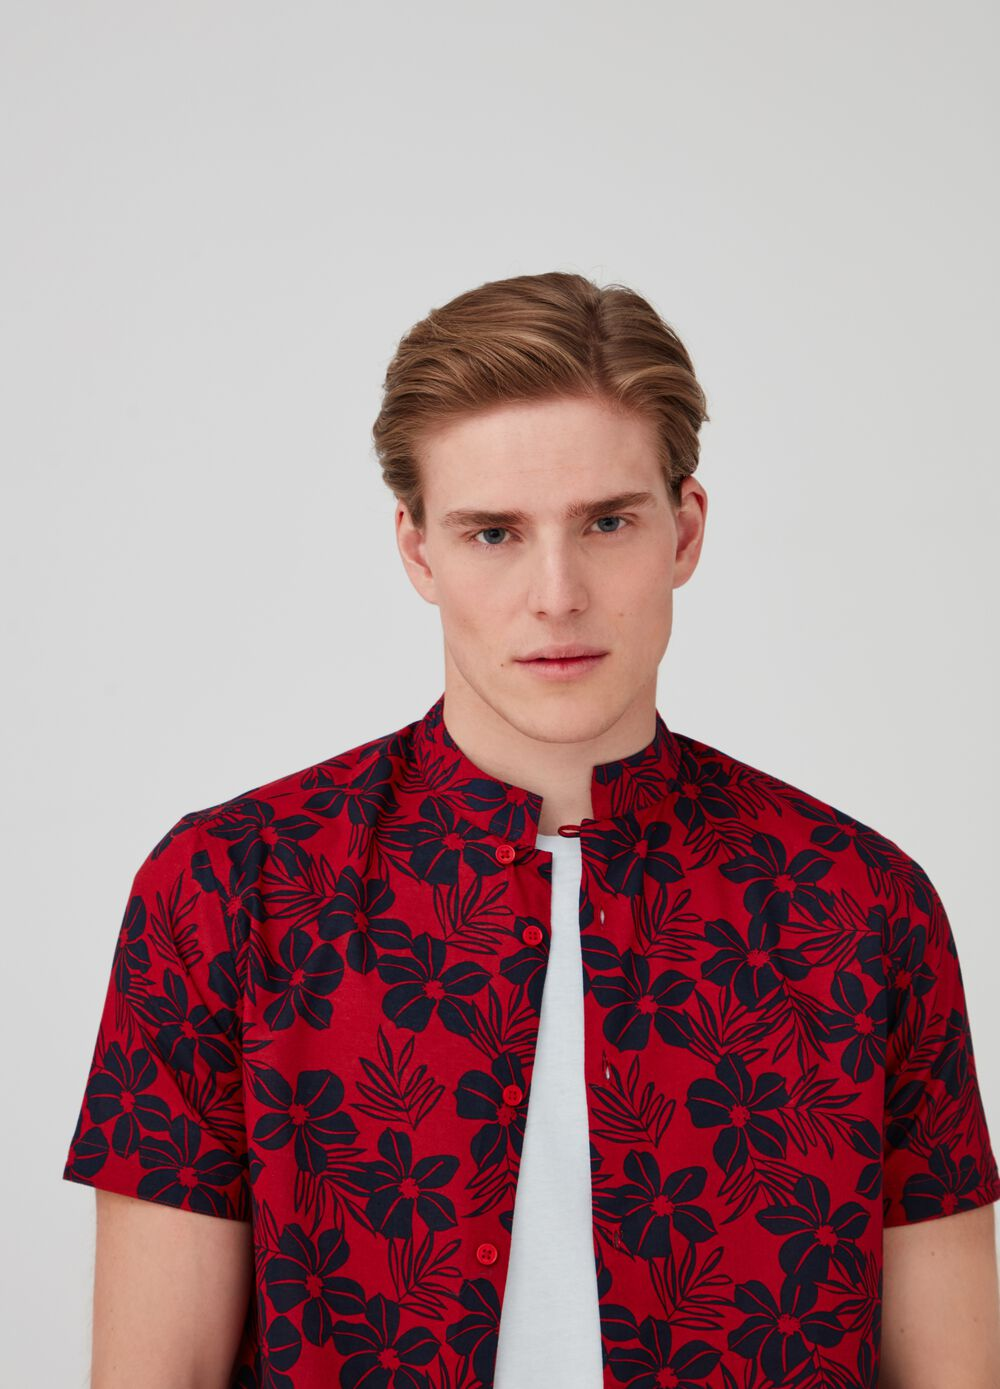 Floral cotton shirt with short sleeves